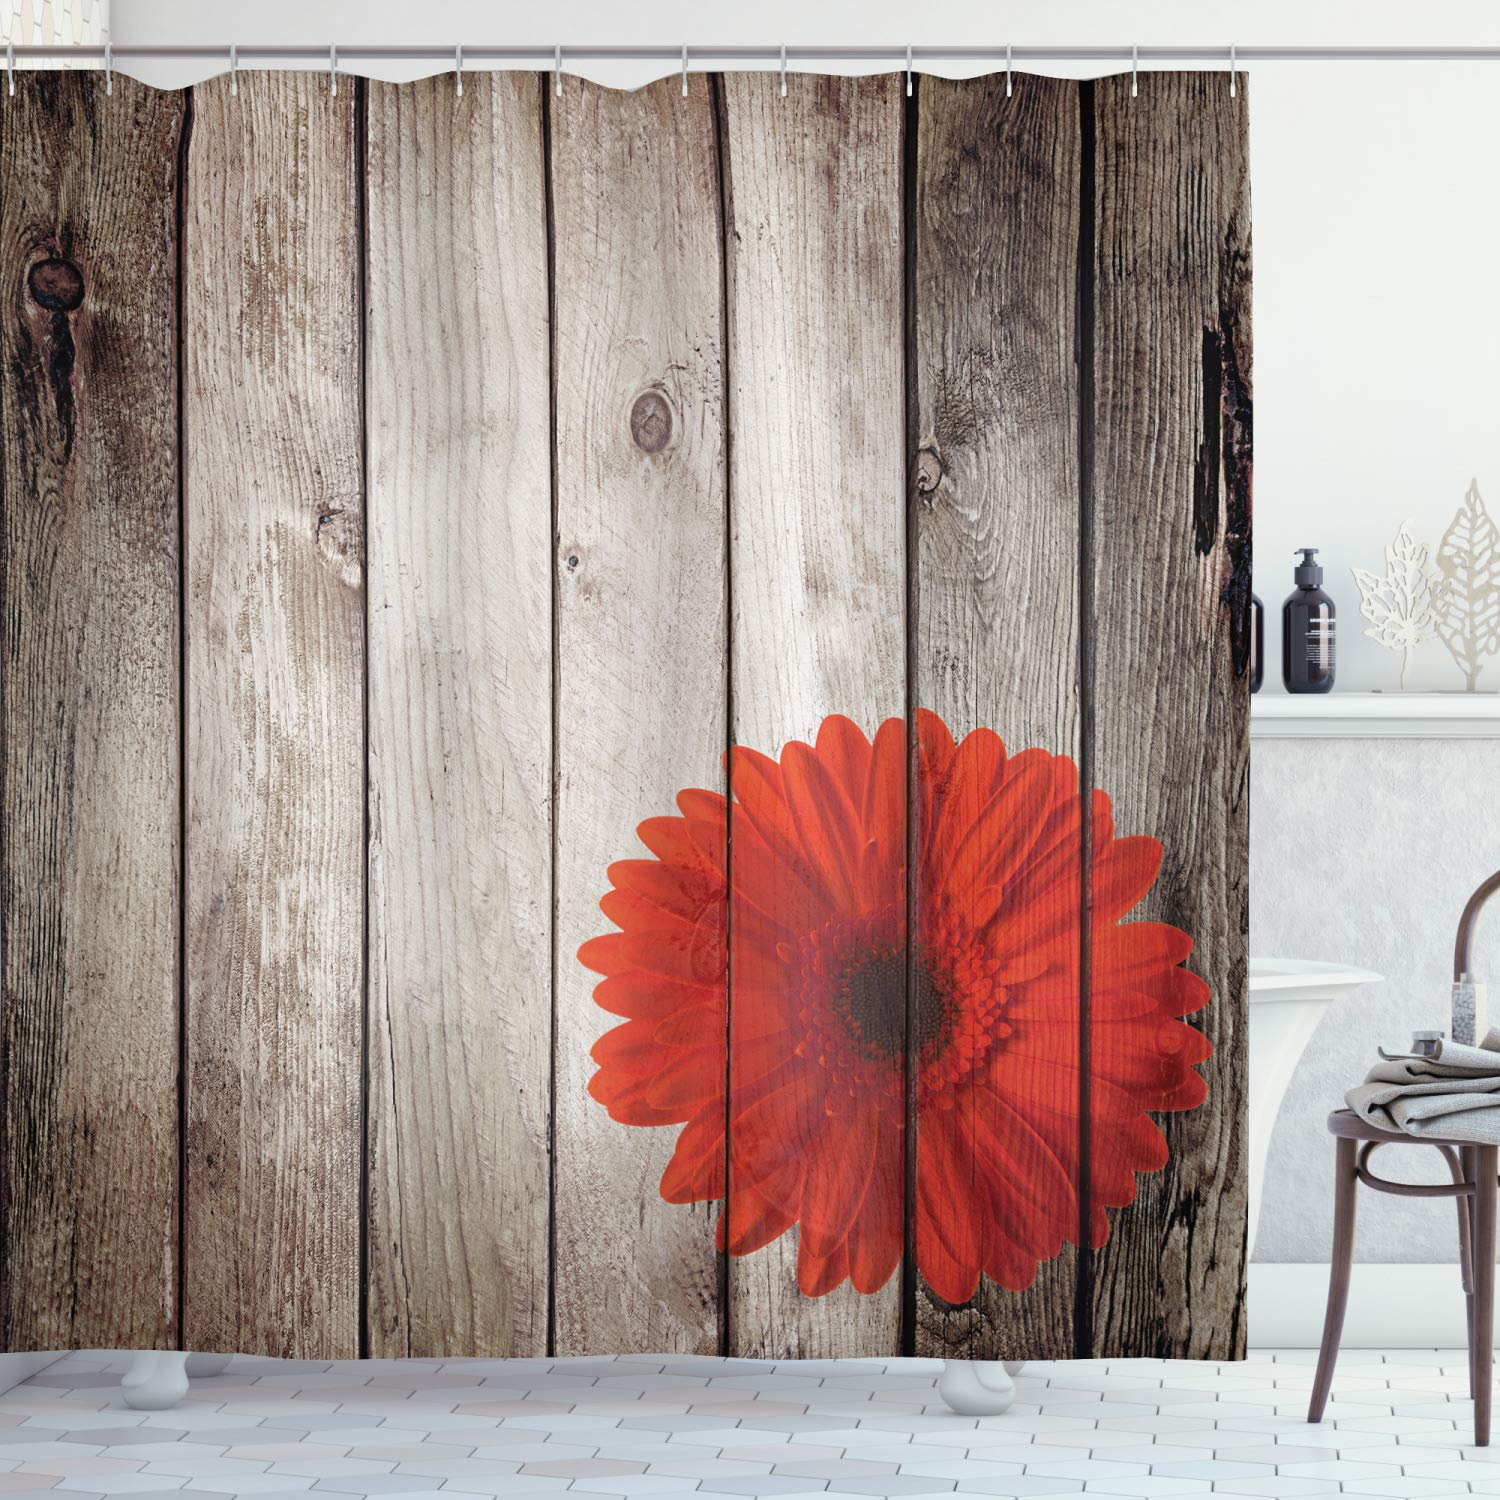 Ambesonne Grunge Decor Shower Curtain Set, Rustic Wooden Garden Fence with a Red Daisy Bloom Picture Flower Art Floral Garden Design, Bathroom Accessories Collection, Polyester Fabric,Grey Red